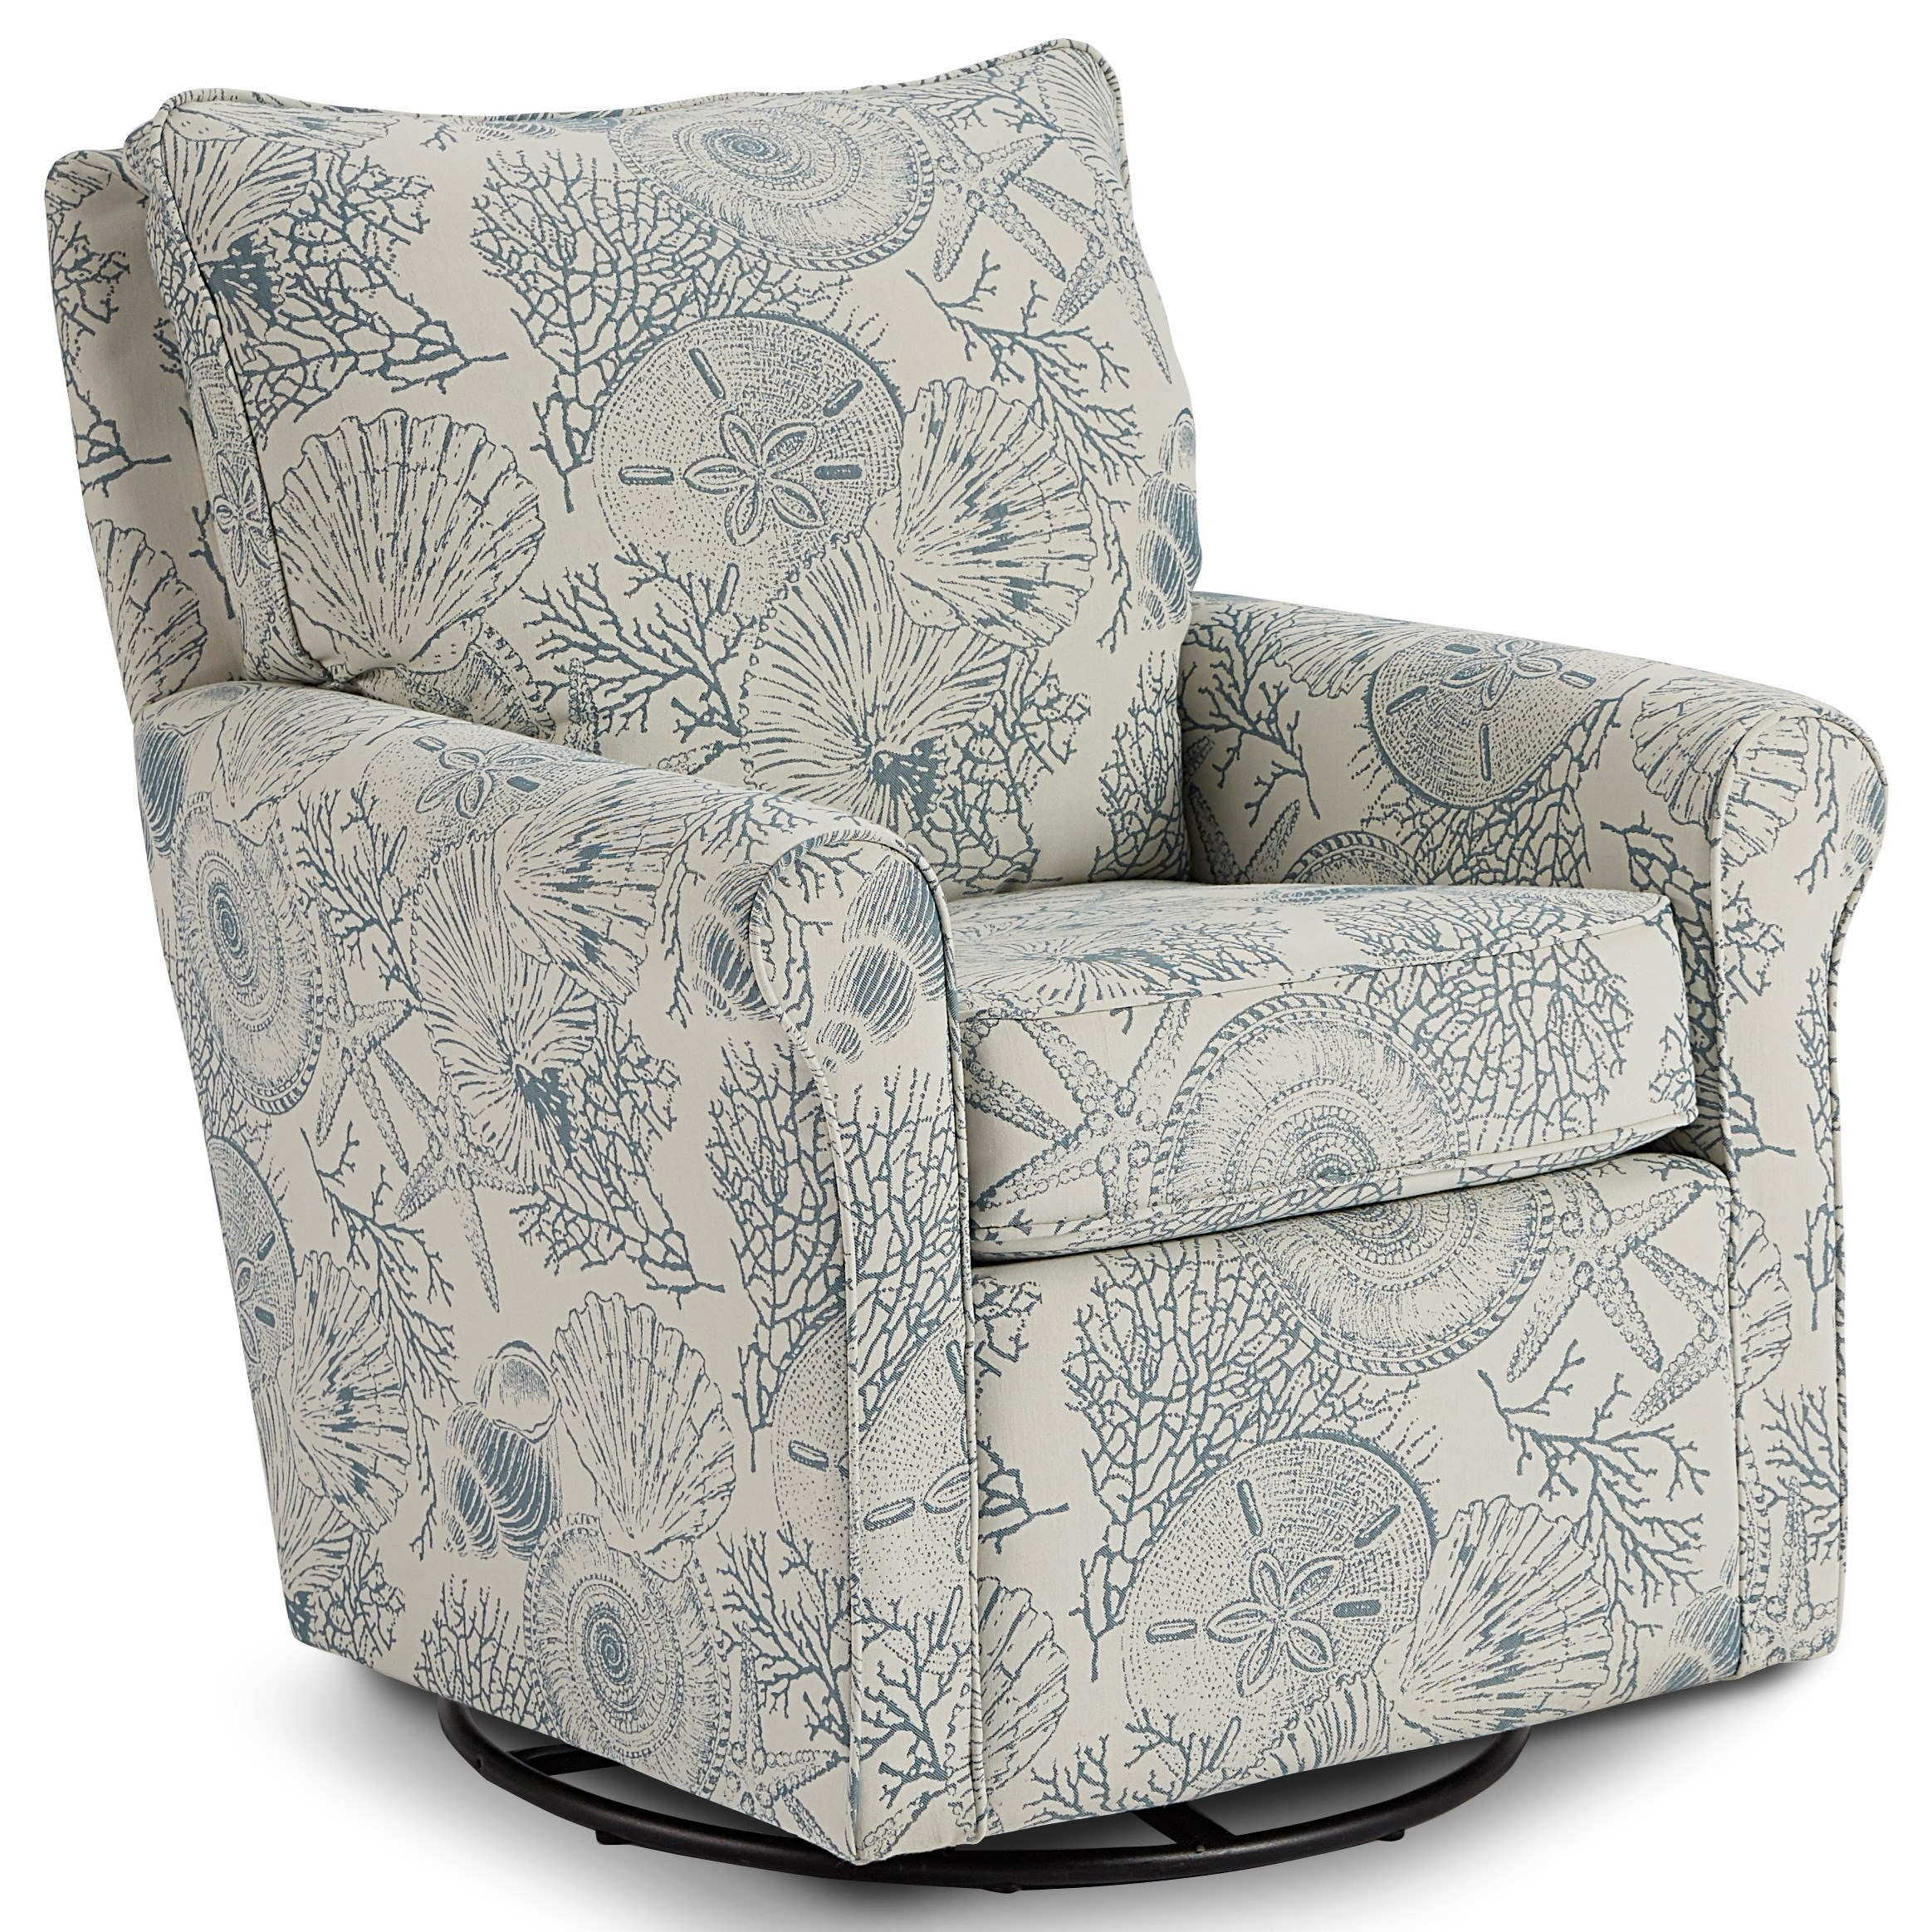 Storytime Chair Kacey Casual Swivel Glider Chair By Best Home Furnishings At Lindy S Furniture Company